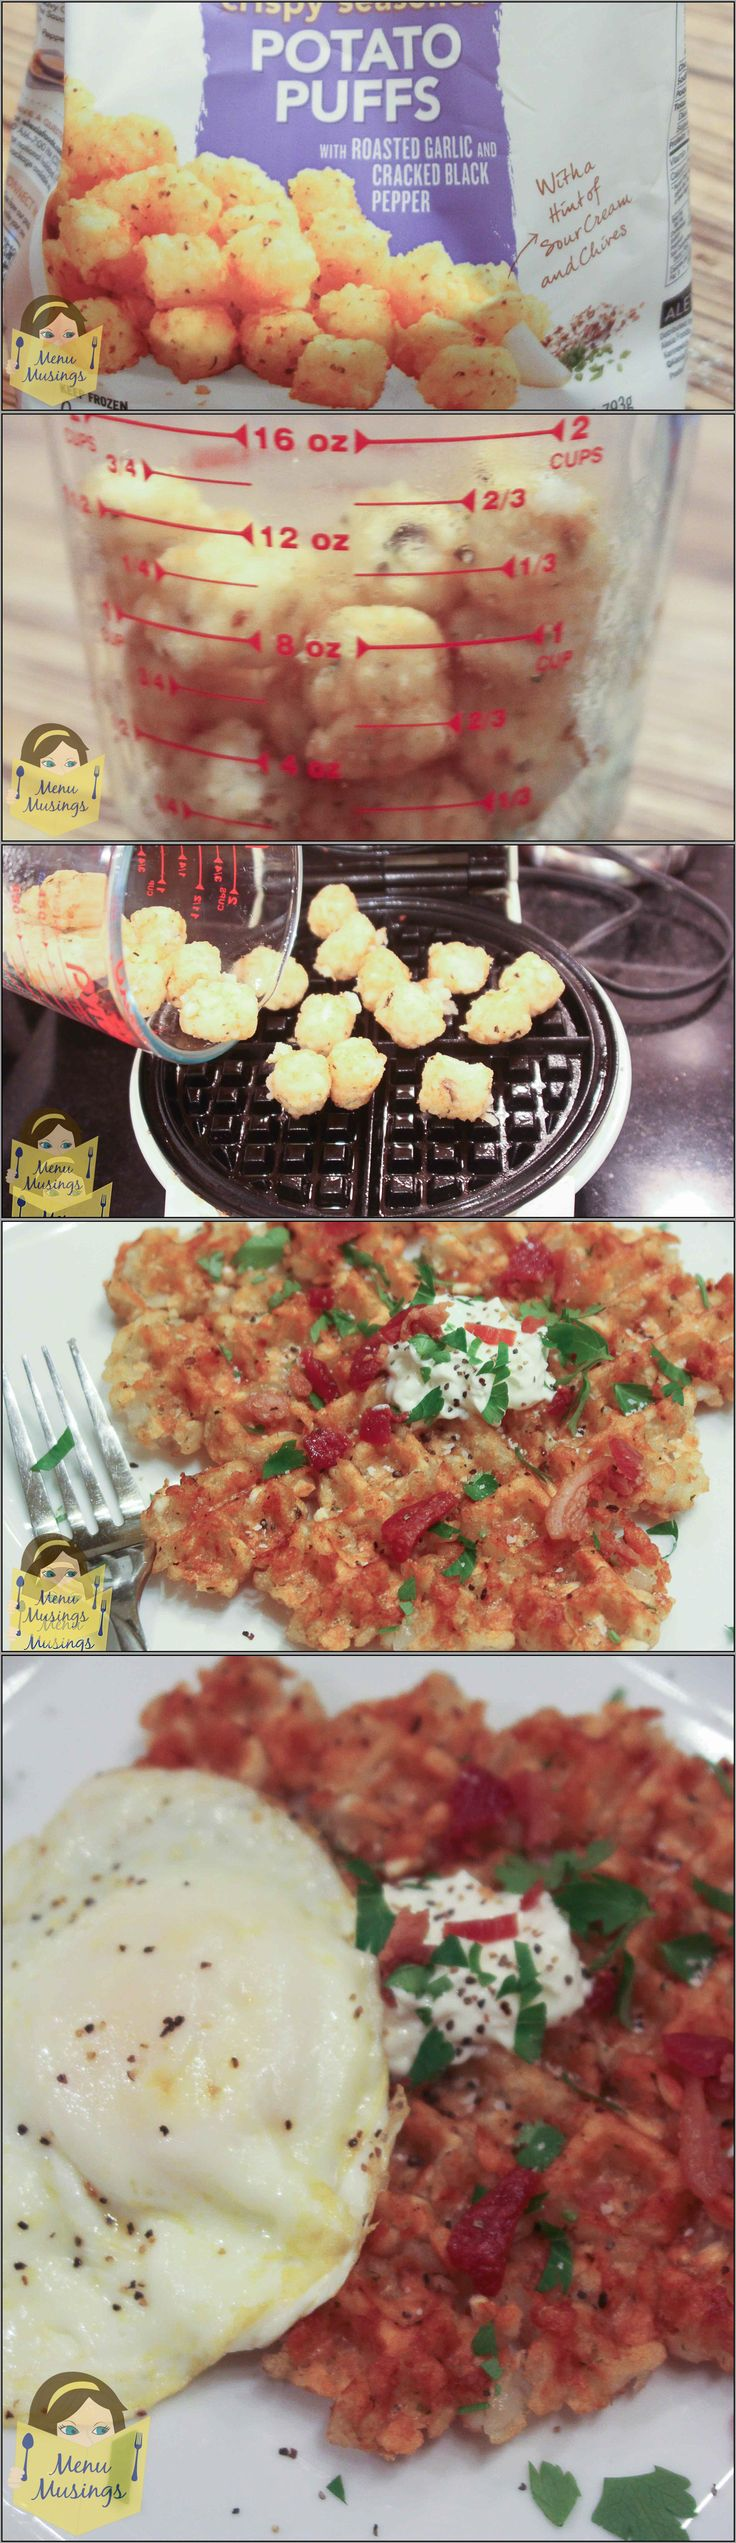 Waffle Iron Tater Tot Hash Browns - you can't get easier than this!  And it's way faster than the oven.  Step-by-step photos.  <3